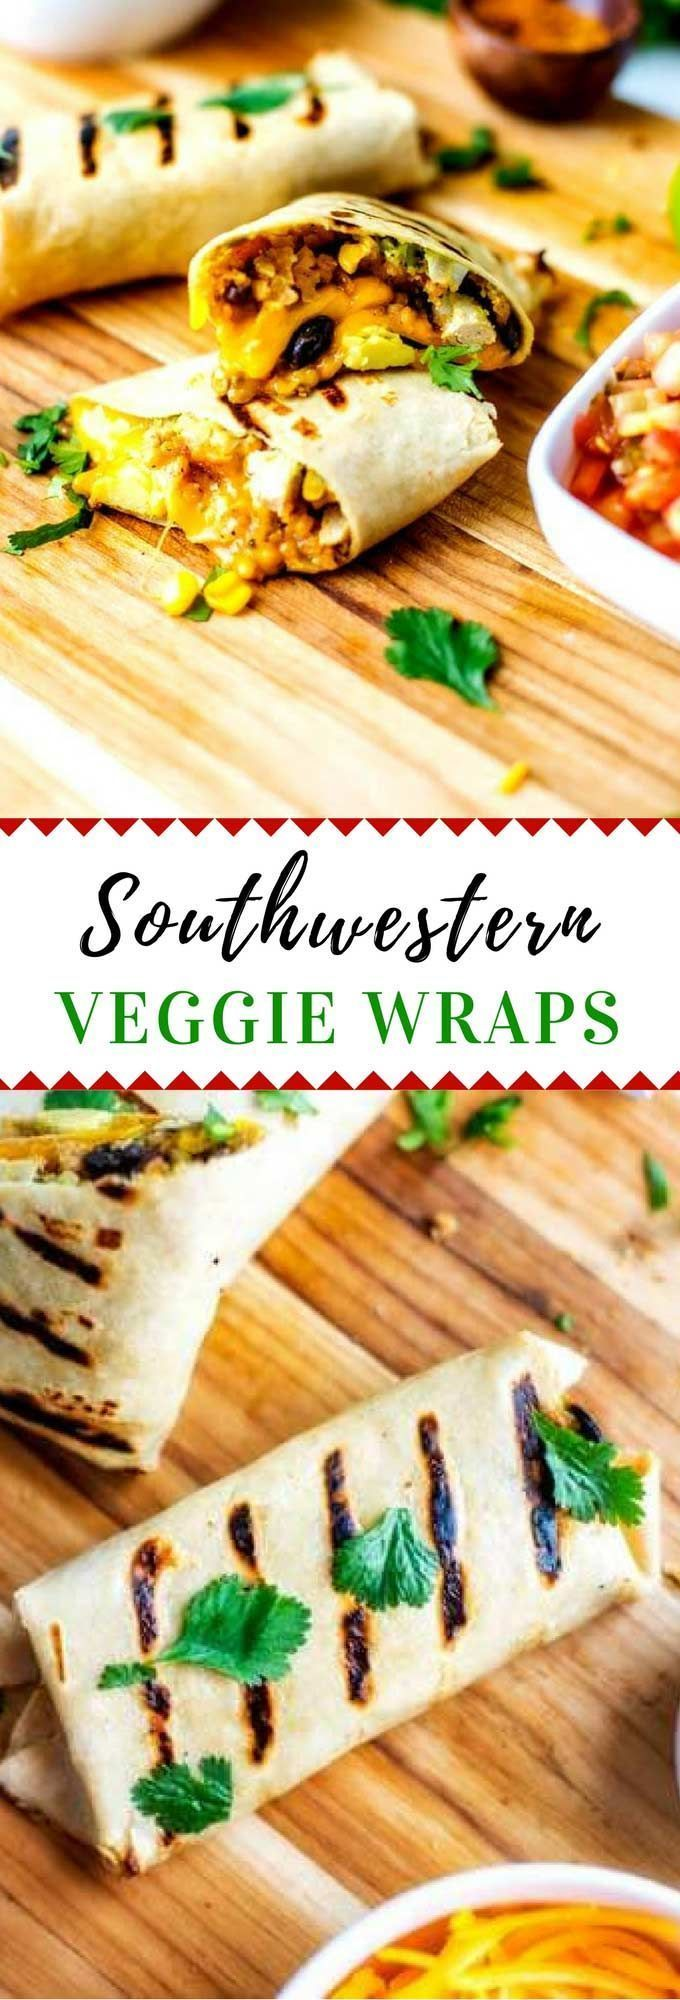 This Southwest Veggie Wrap Recipe is an easy lunch or dinner idea that the whole family will love.  It is perfect for meal prep and can be served warm or cold. Easily made into a vegan Southwestern Wrap with the use of vegan cheese. #ad #vegetarian #vegetarianrecipes #lunch #vegetariandinnerrecipesforfamily